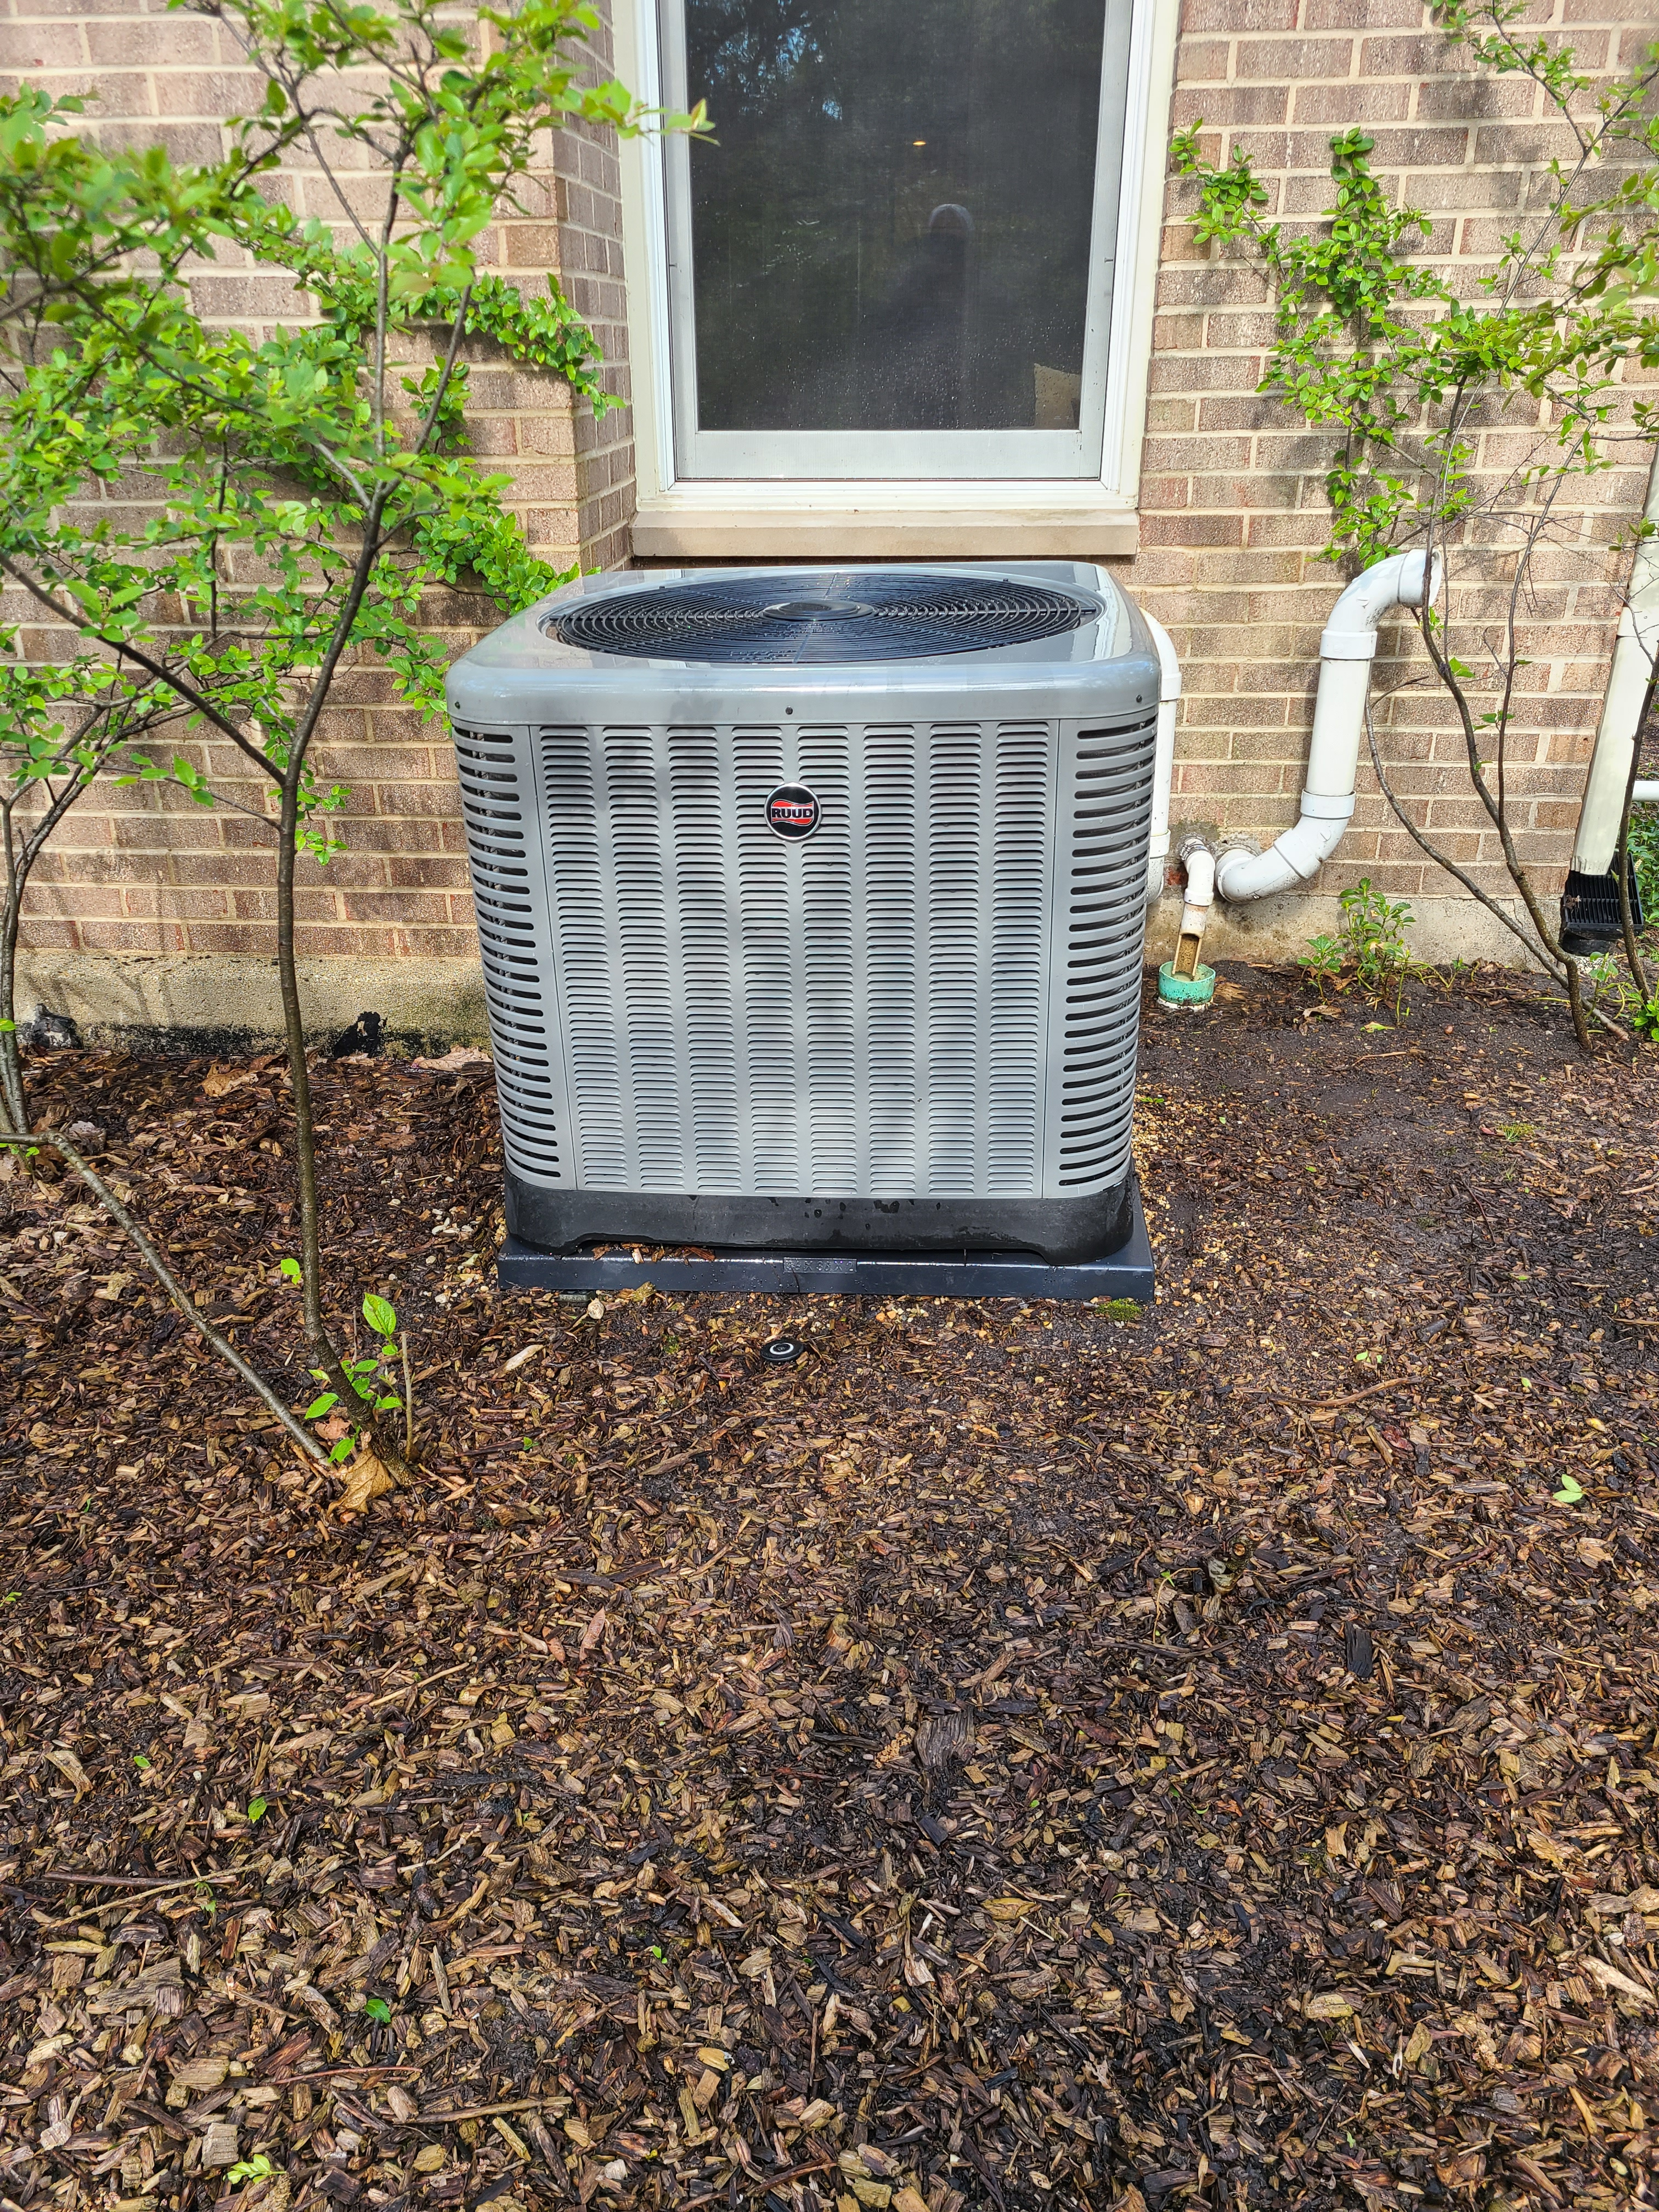 Yearly maintenance on your Ruud AC can save you money and make your system run longer.